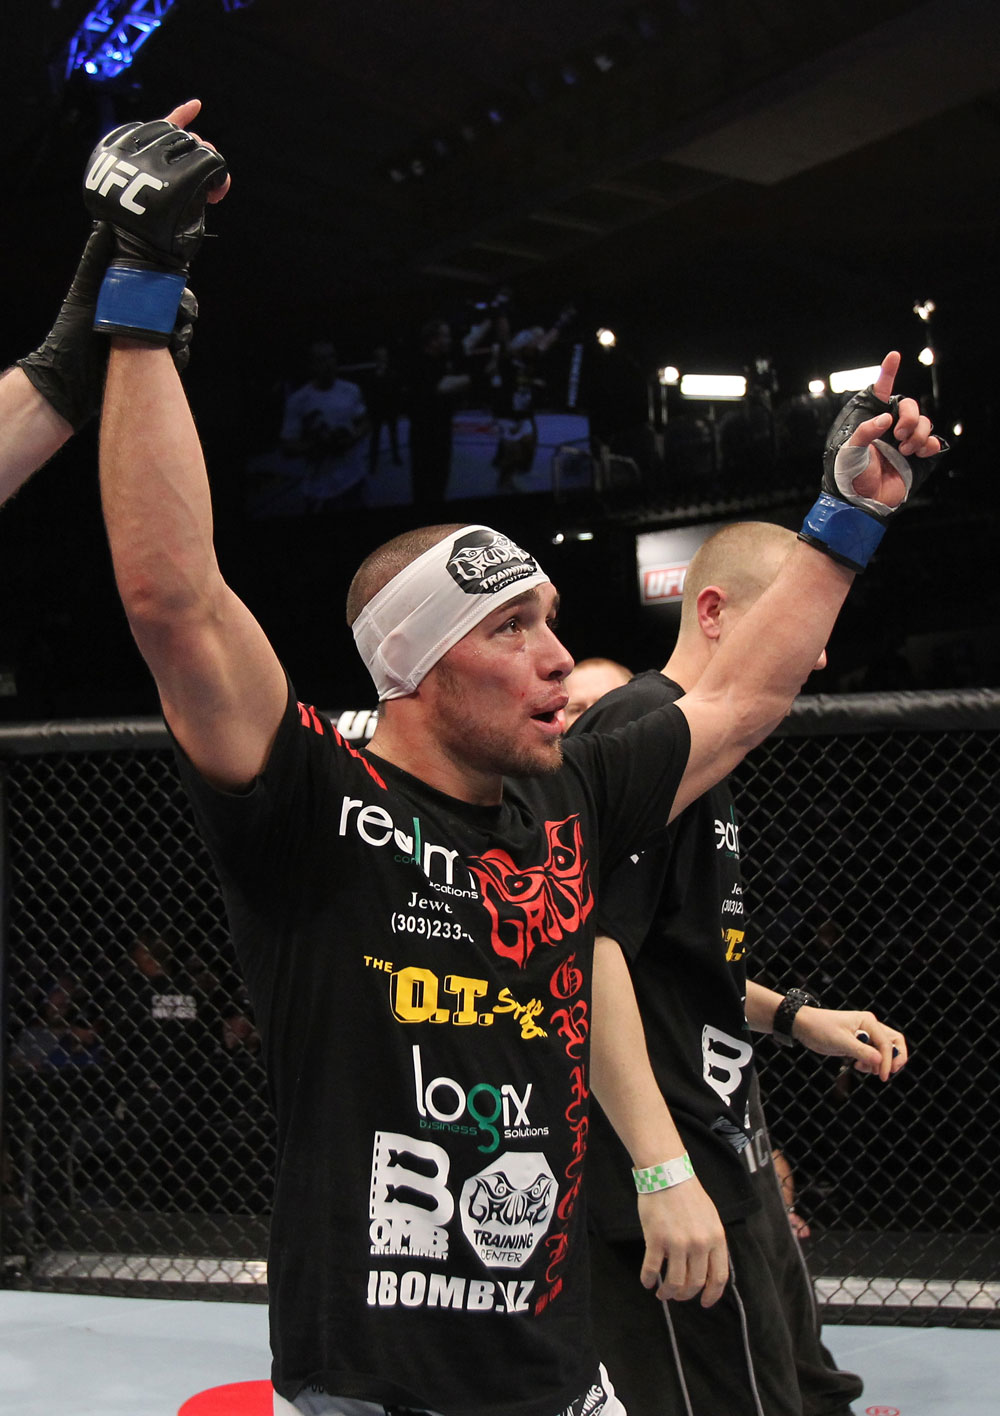 OMAHA, NE - FEBRUARY 15:  Justin Salas reacts after defeating Anton Kuivanen during the UFC on FUEL TV event at Omaha Civic Auditorium on February 15, 2012 in Omaha, Nebraska.  (Photo by Josh Hedges/Zuffa LLC/Zuffa LLC via Getty Images) *** Local Caption *** Justin Salas